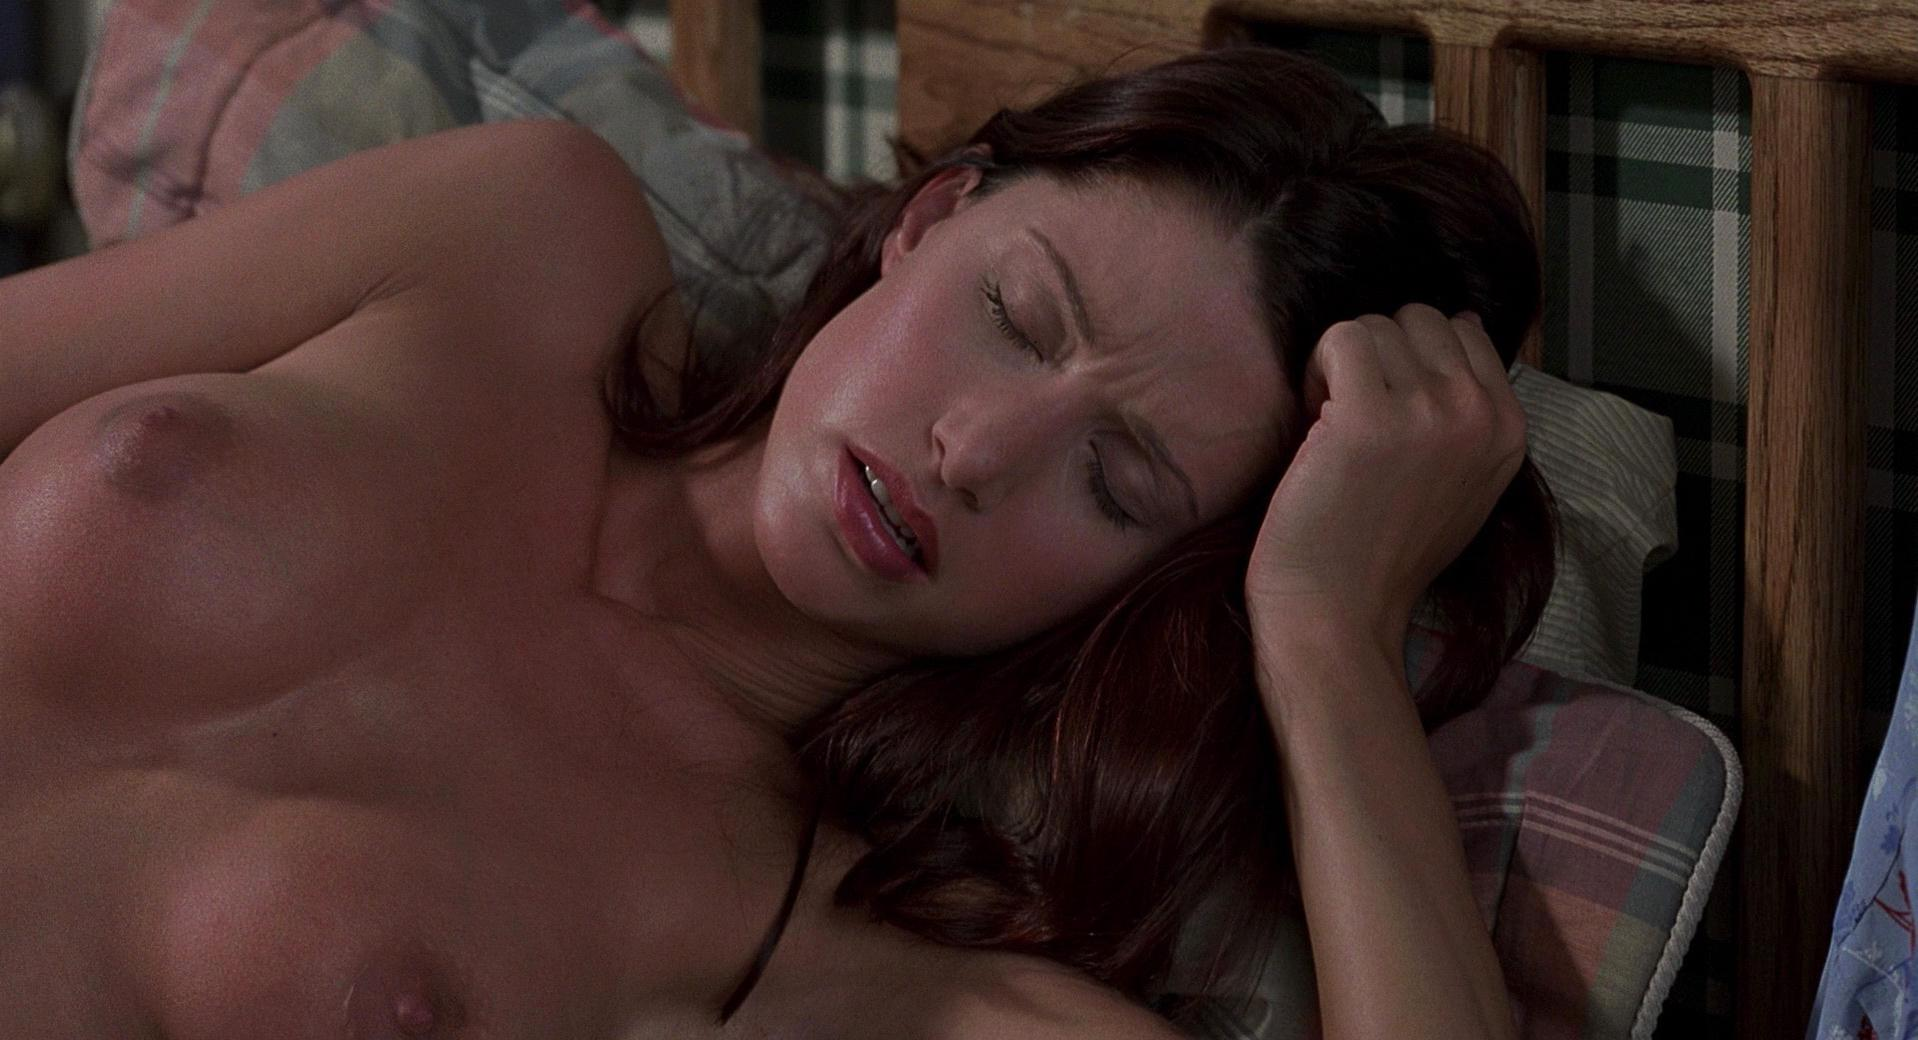 American Pie Uncensored Video nude video celebs » shannon elizabeth nude - american pie (1999)